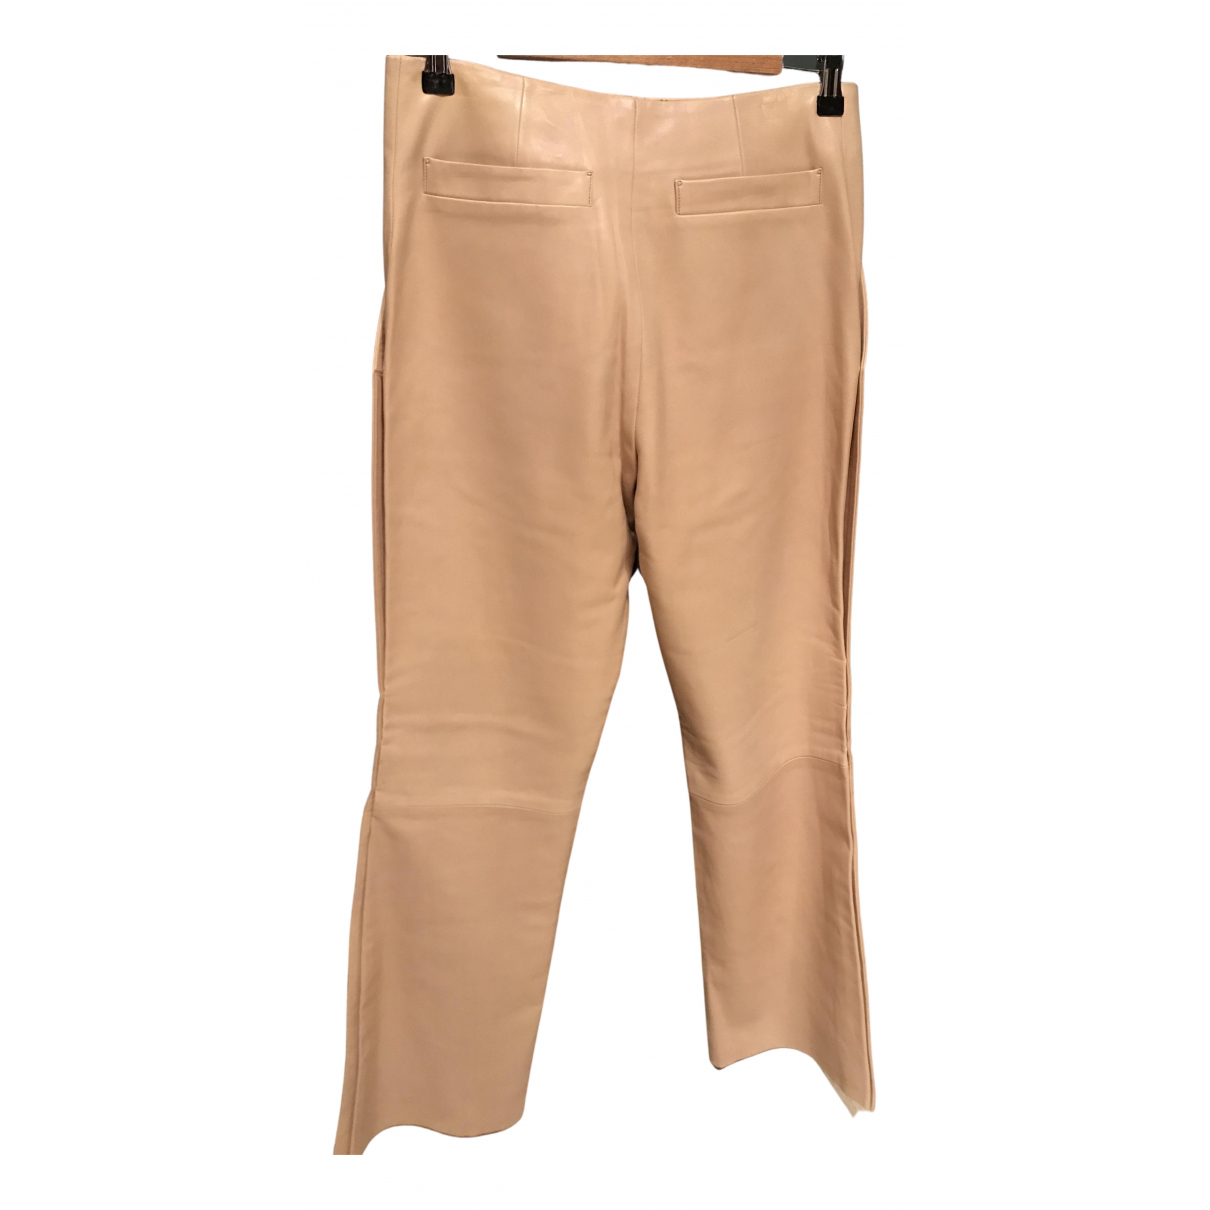 Louis Vuitton N Camel Leather Trousers for Women 40 FR